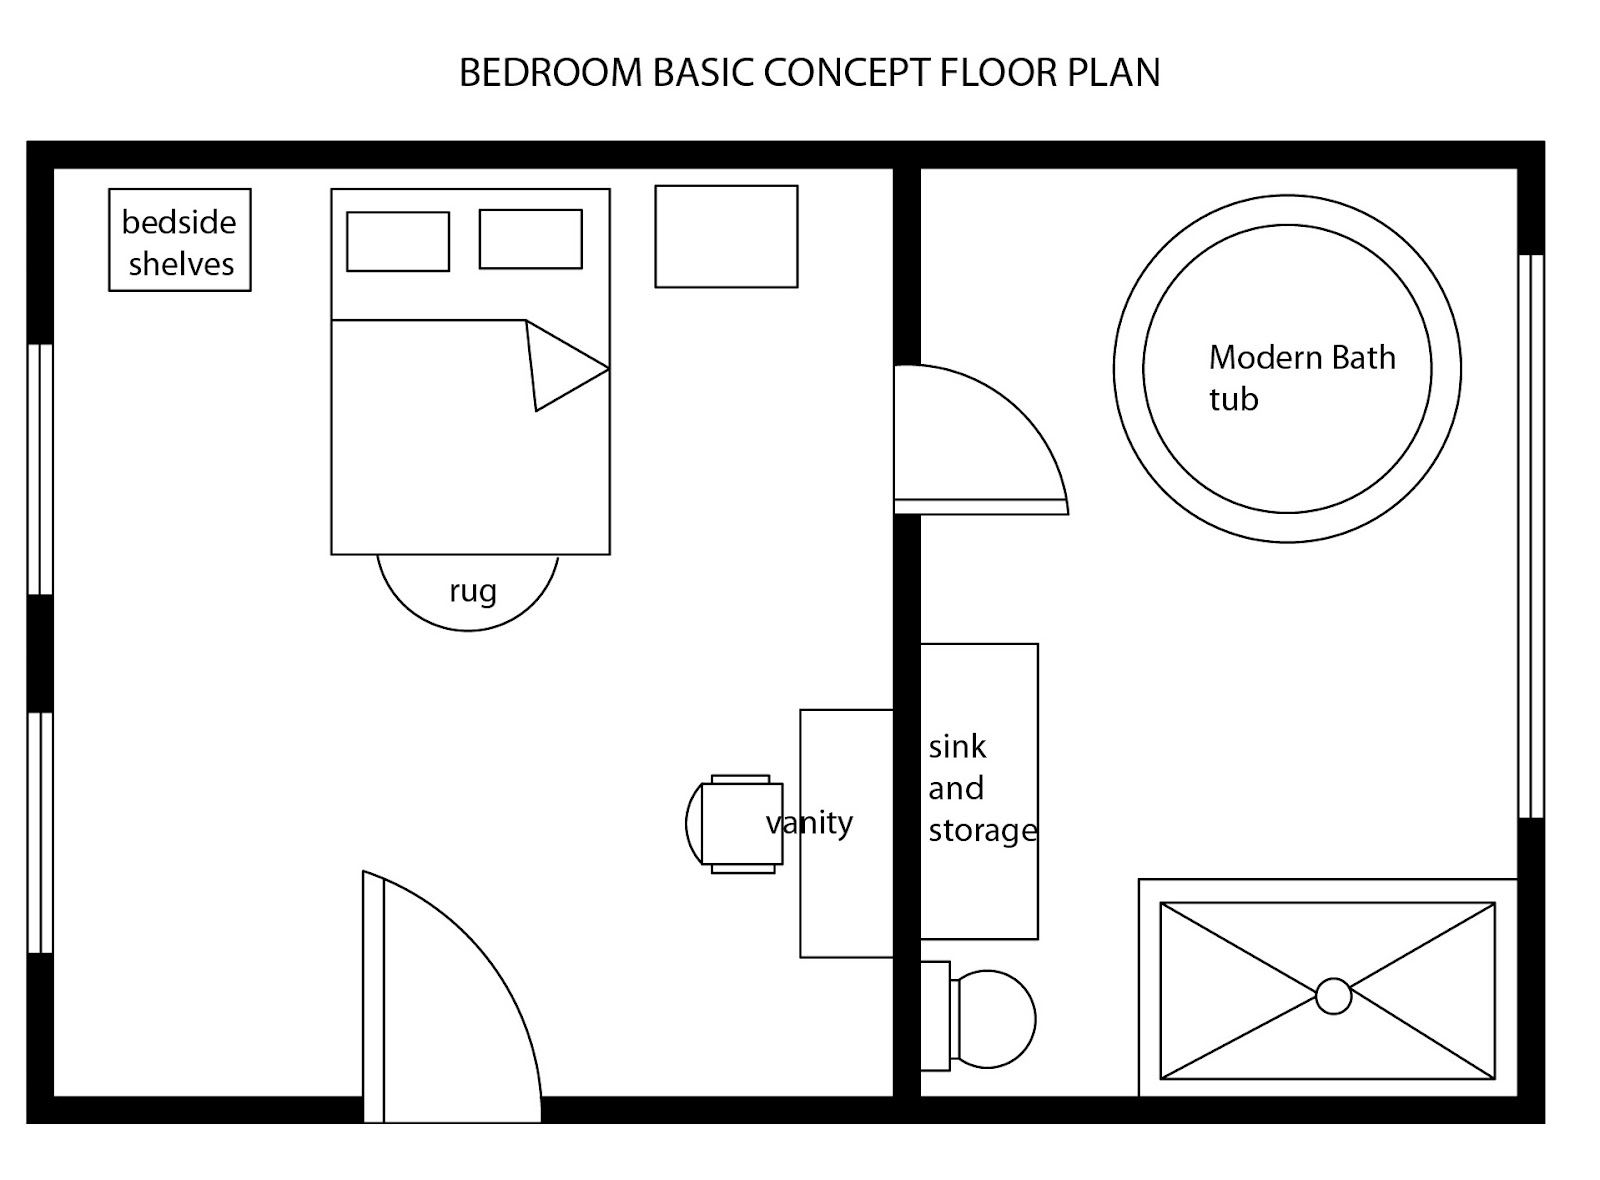 Design Floor Plan For Bathroom Home Decorating Ideasbathroom Interior Design